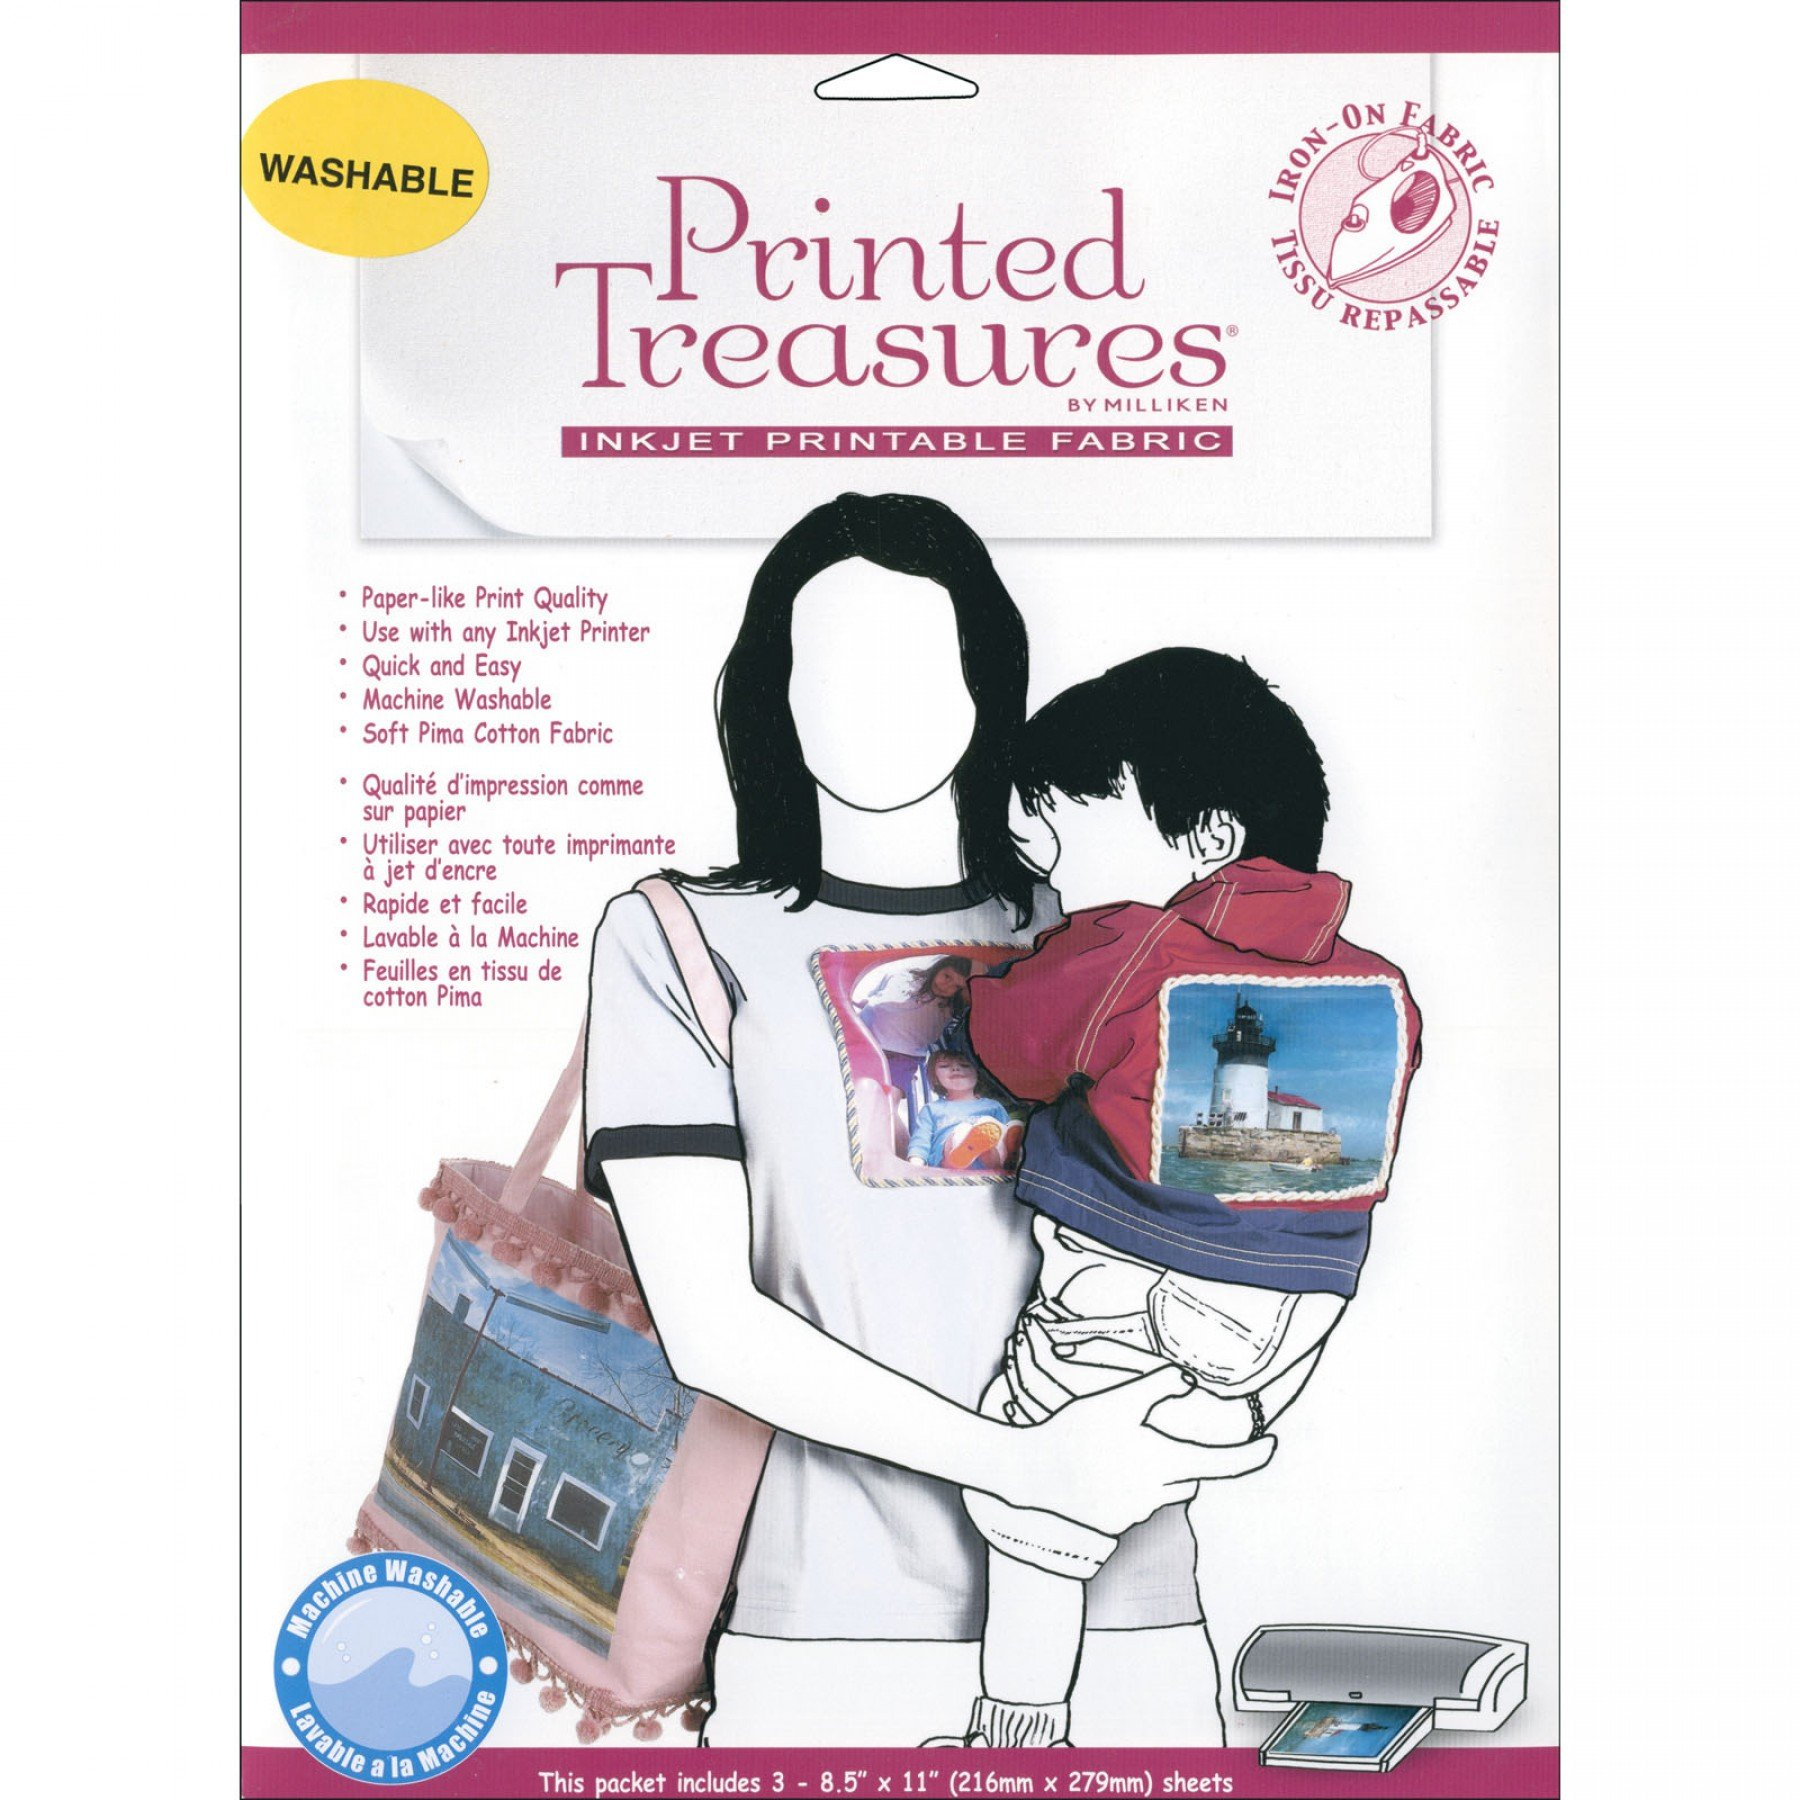 image relating to Ink Jet Printable Fabric known as Published Treasures - Inkjet Printable Material EE Schenck Co.